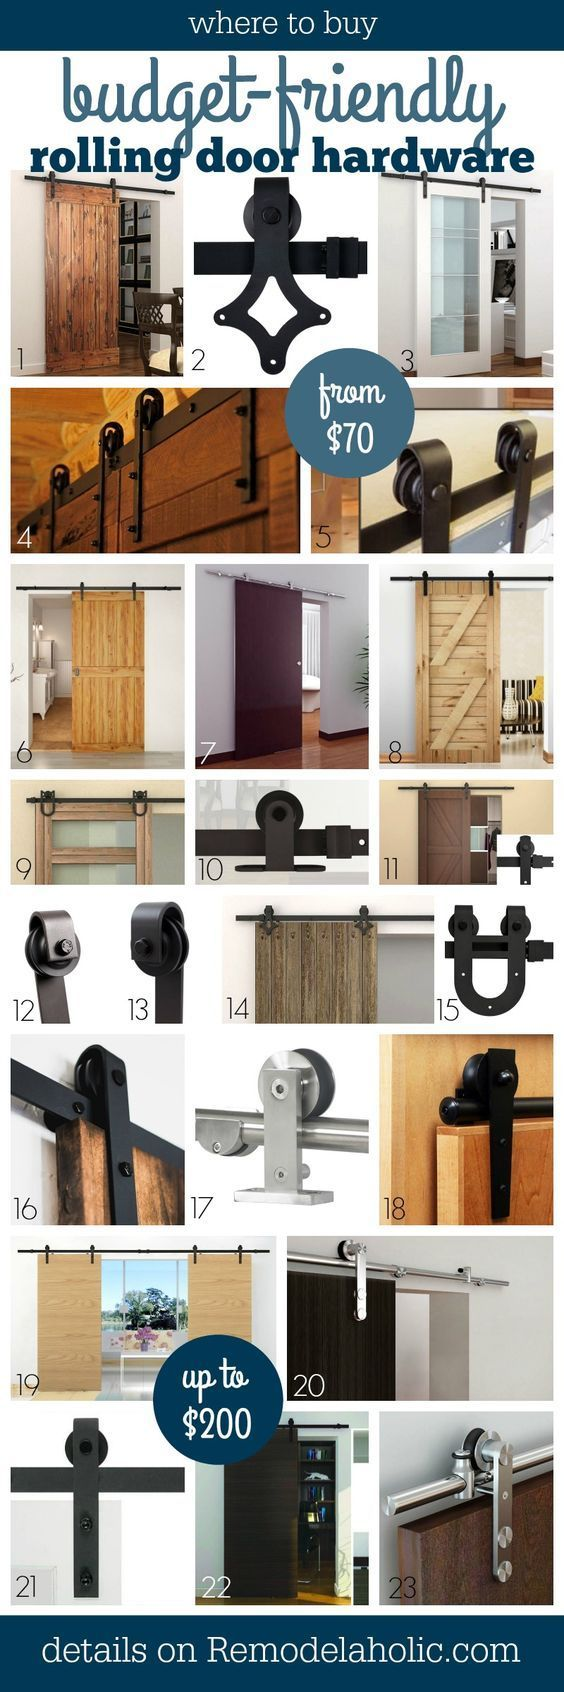 400 Best Moldings And Doors Images On Pinterest Wood Future House